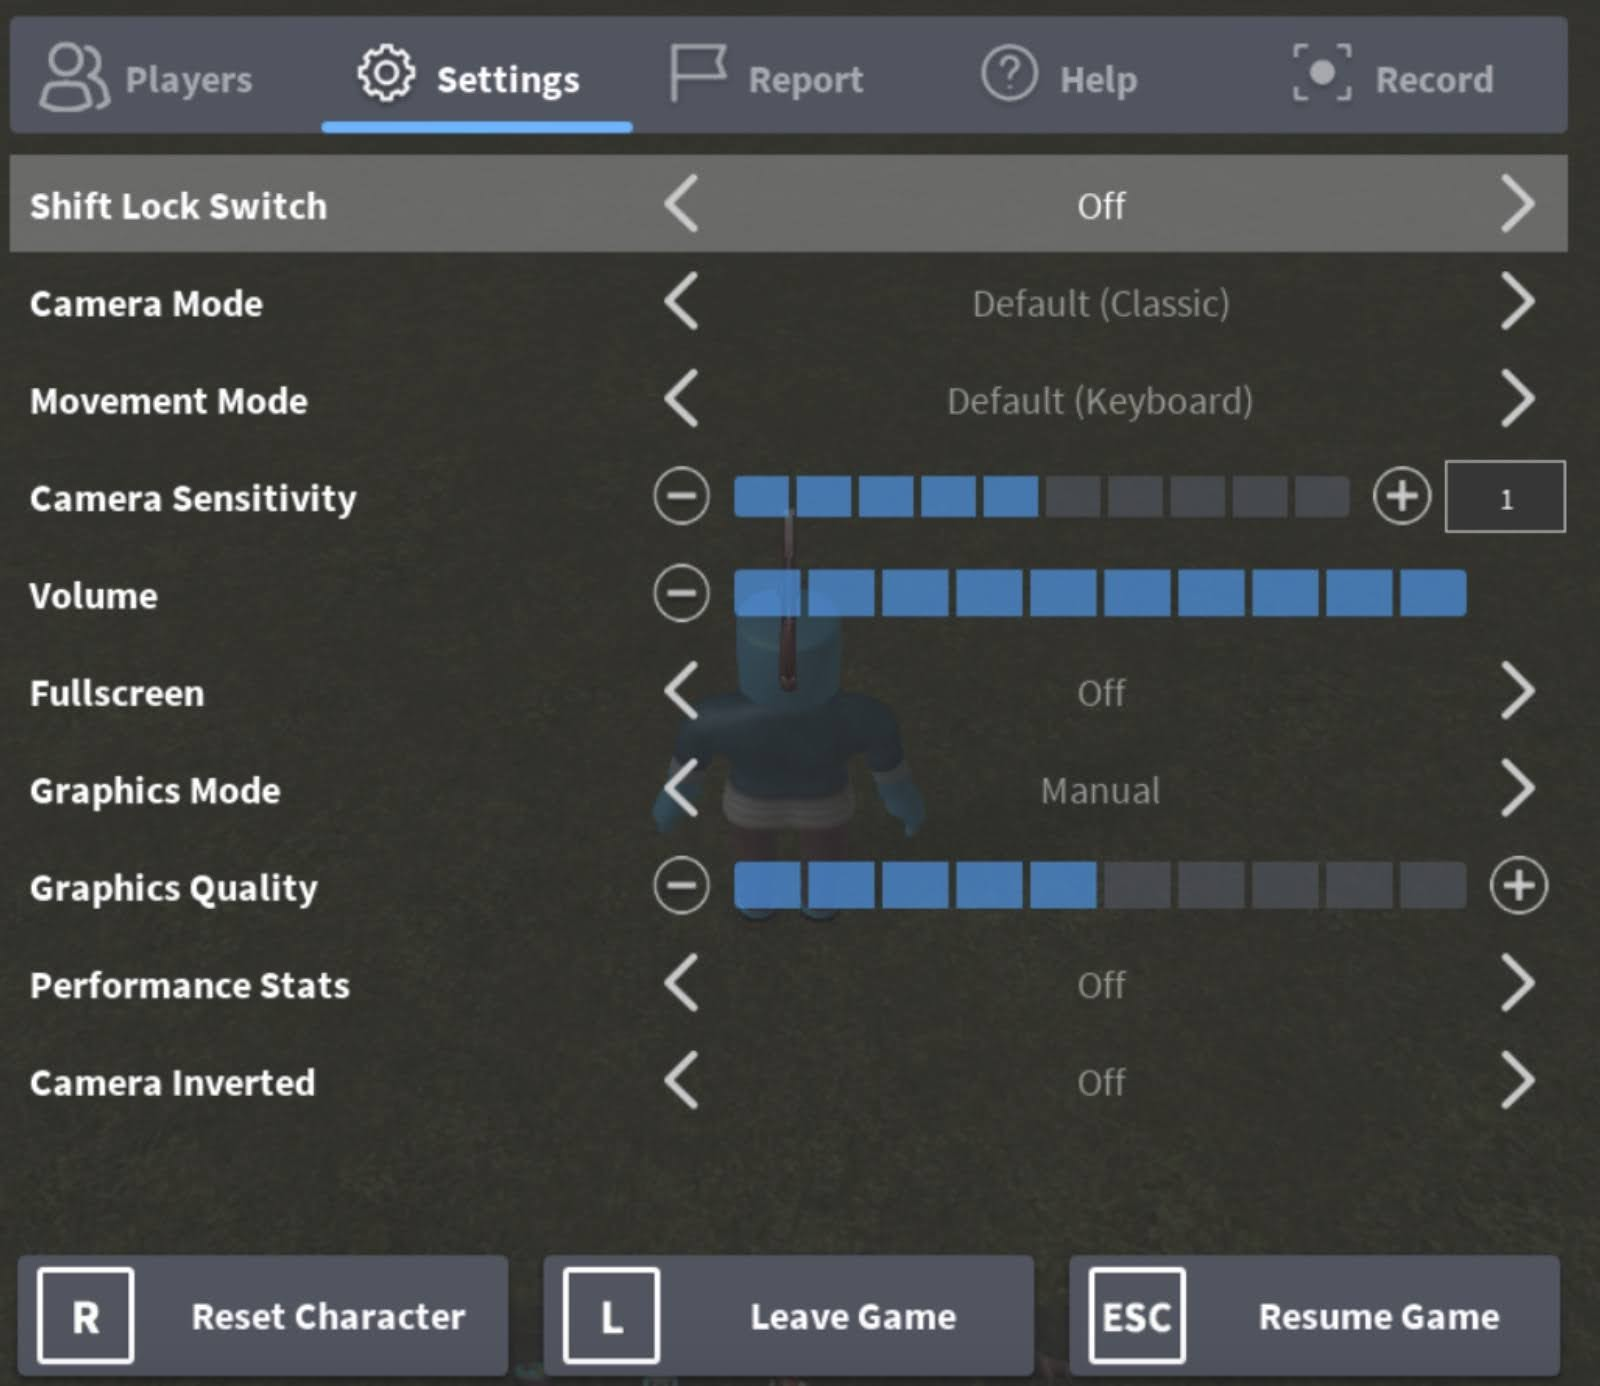 Change the Graphics Mode to Manual, and move the Graphics Quality slider to the left for better performance.